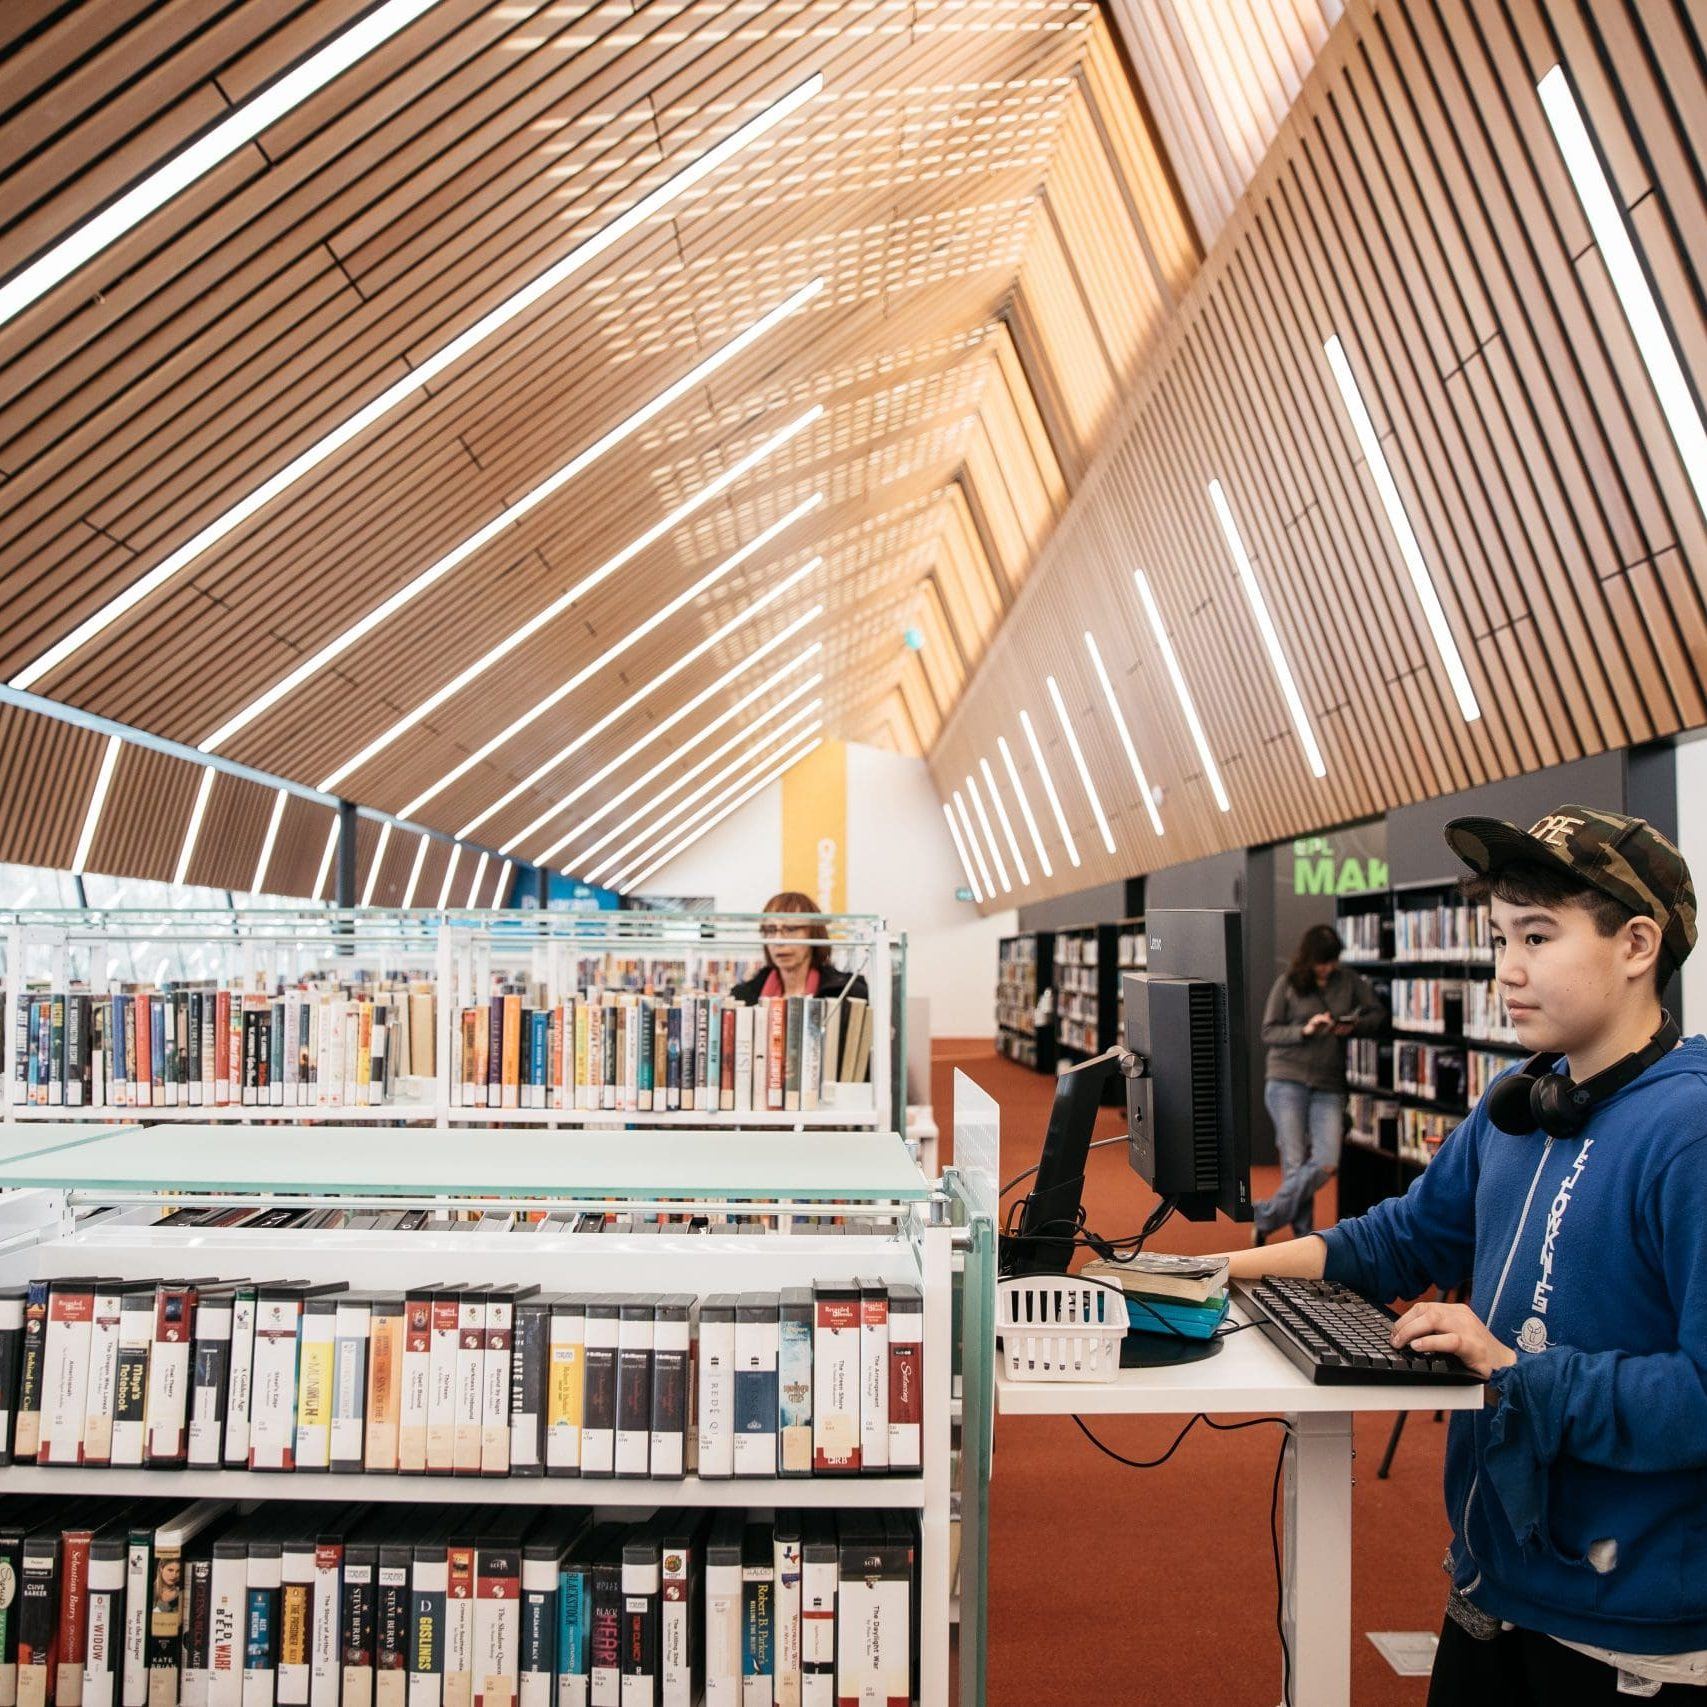 Customer at Capilano Branch stands beside book stacks and uses a computer